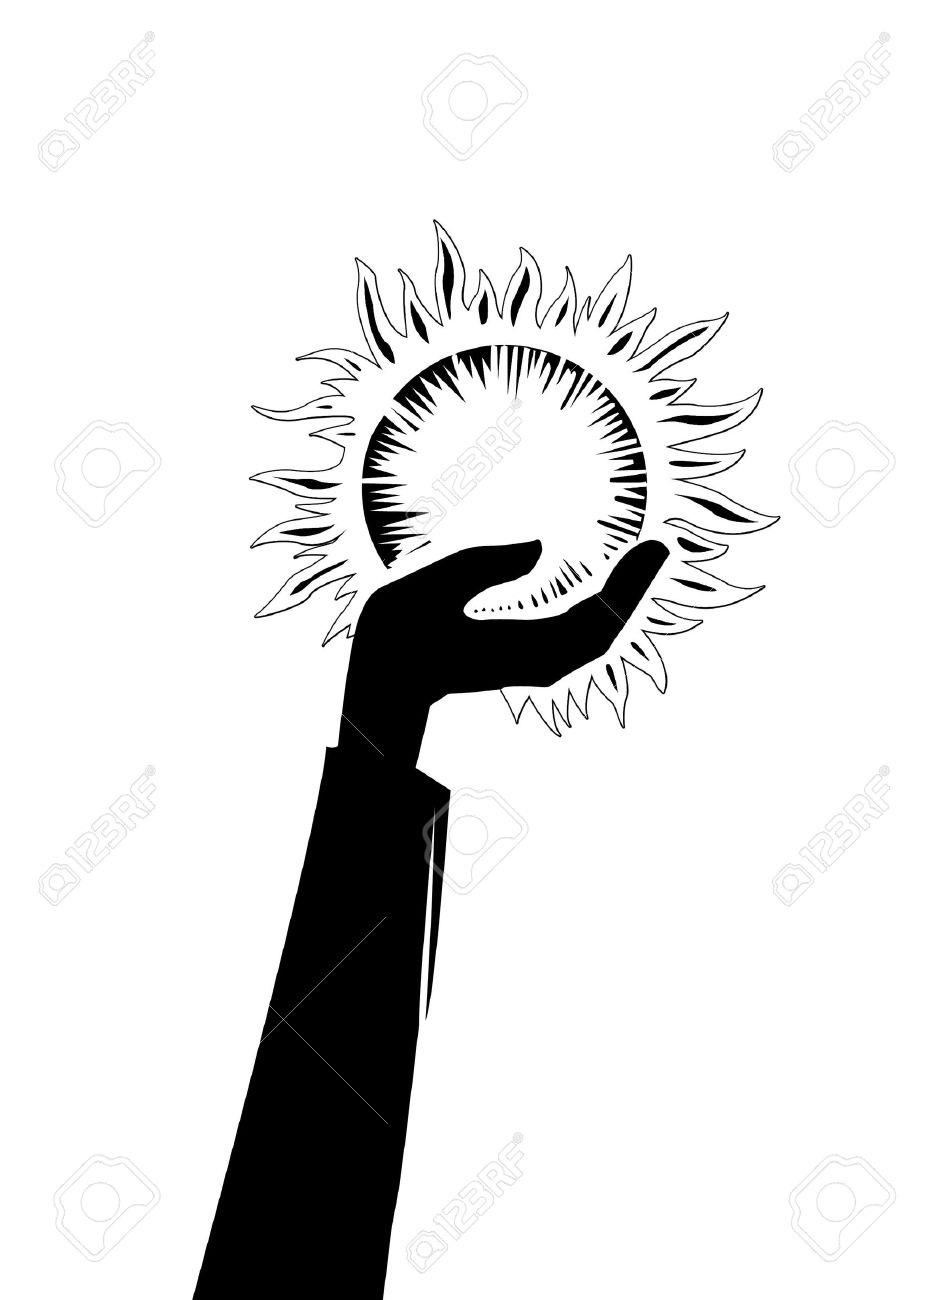 6657945-silhouette-of-the-hand-holding-sun-Stock-Vector-logo.jpg